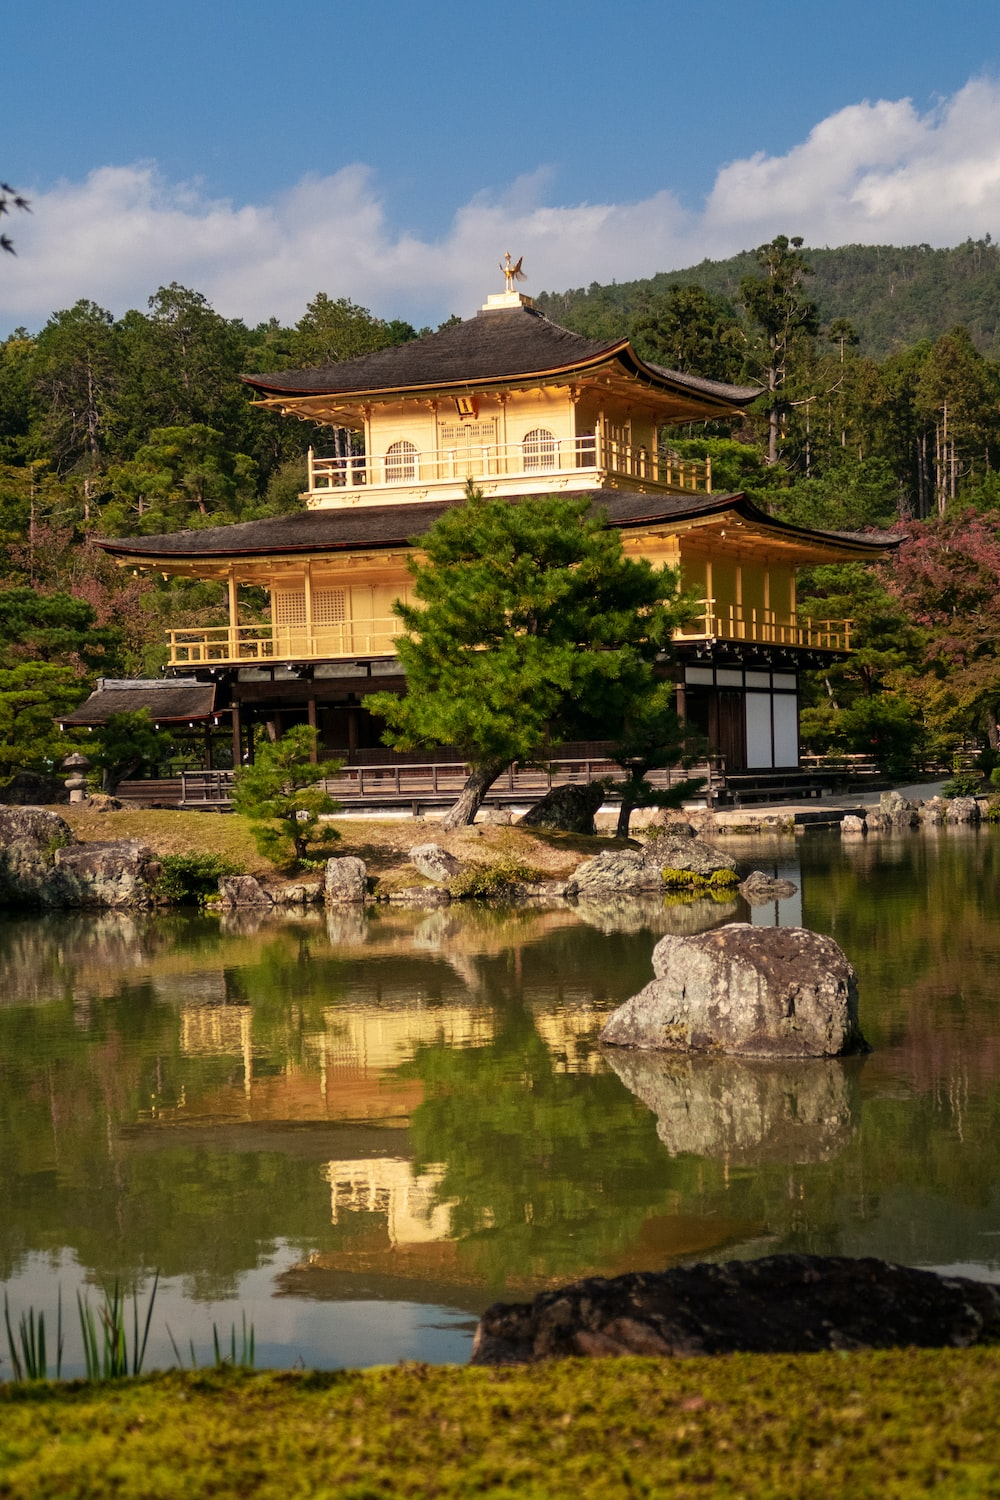 temple beside body of water during daytime